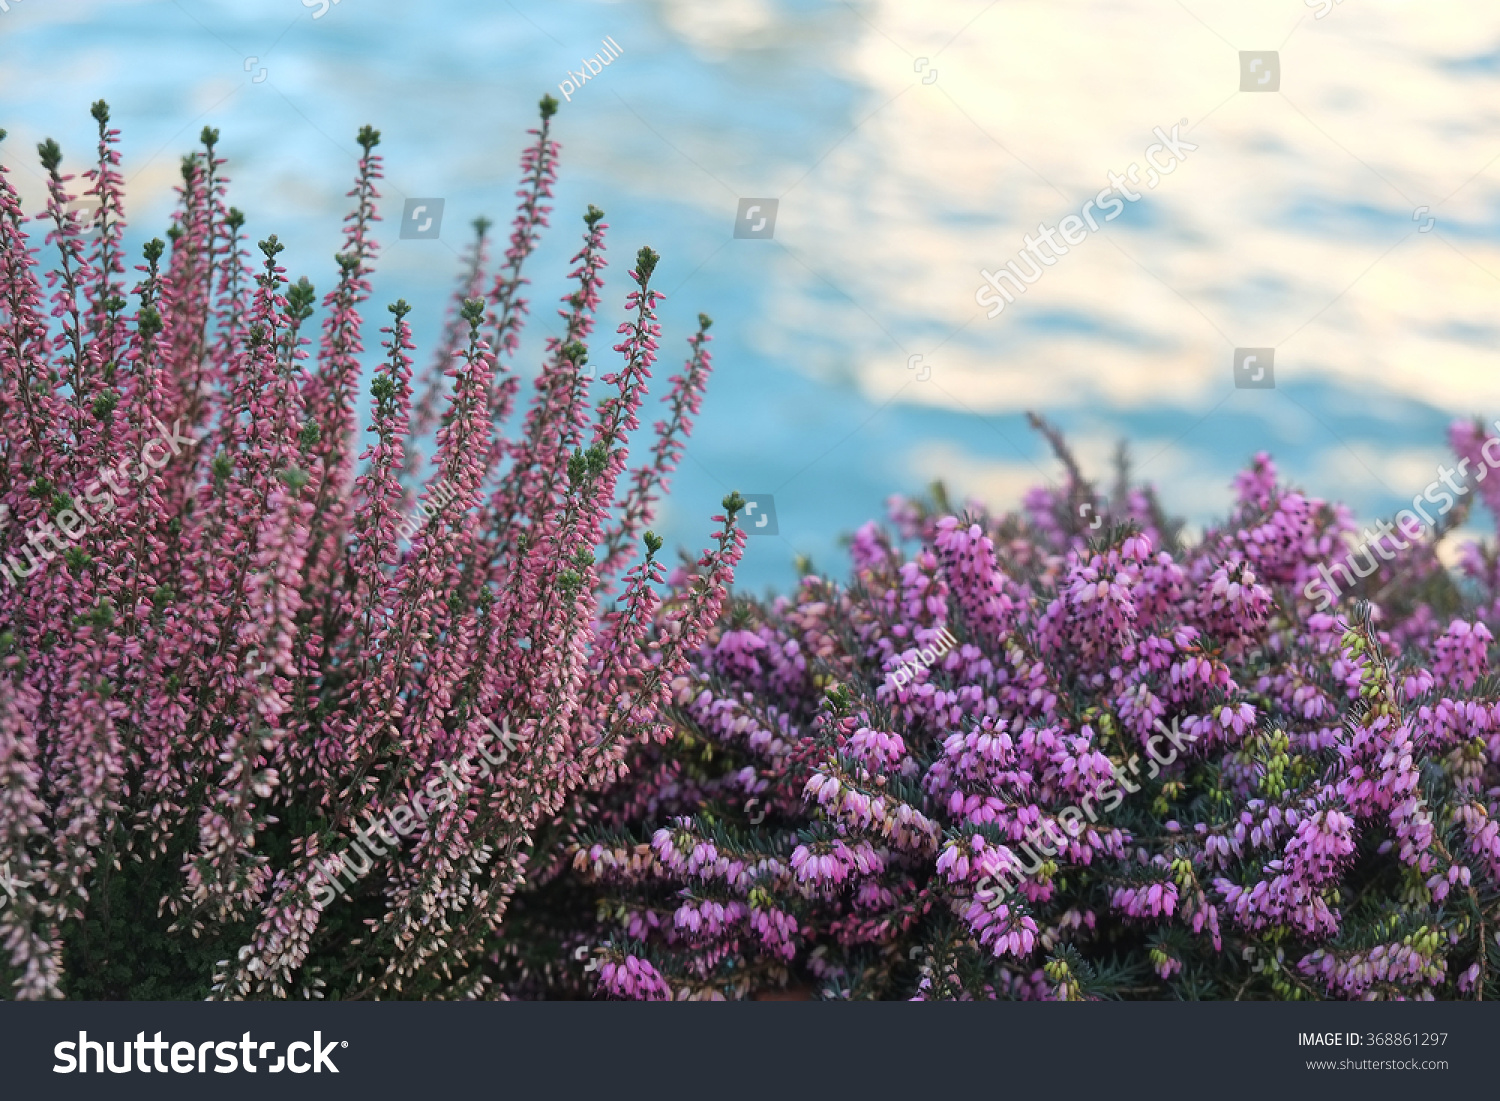 Royalty Free Pink Heath Blooms In Winter Erica 368861297 Stock